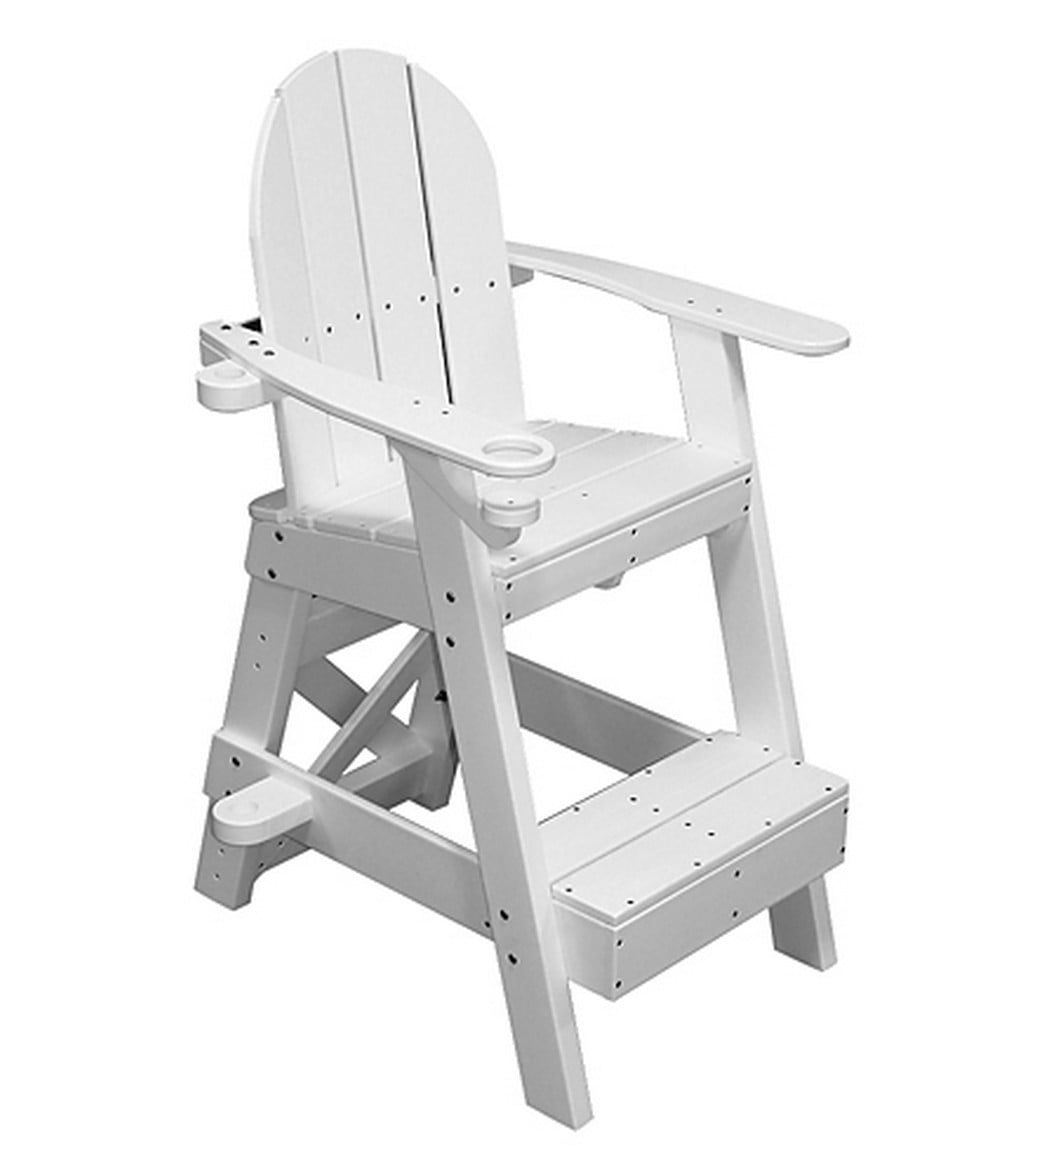 Nice Tailwind Recycled Plastic Lifeguard Chair W/Step At SwimOutlet.com   Free  Shipping